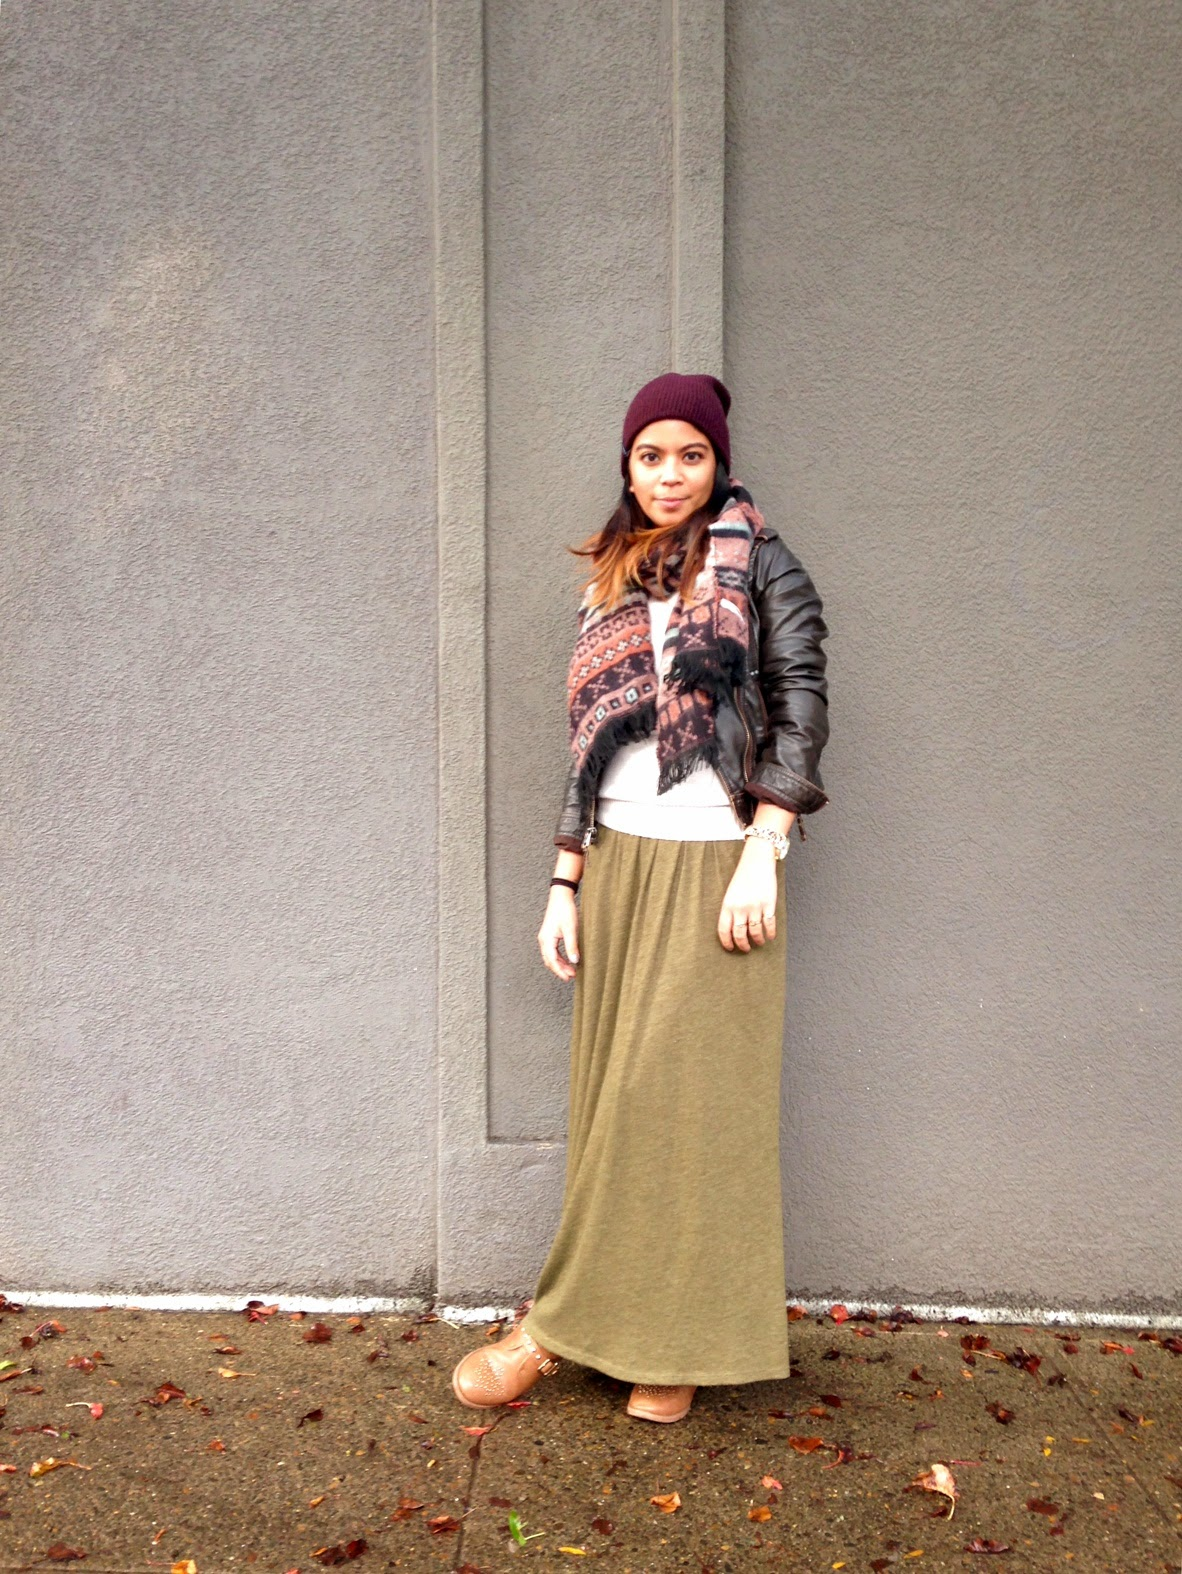 outfit of the day, fall style, maxi skirt, leather jacket, aztec print scarf, beanie, portland blogger, fashion blogger, pdx blogger, filipino fashionista